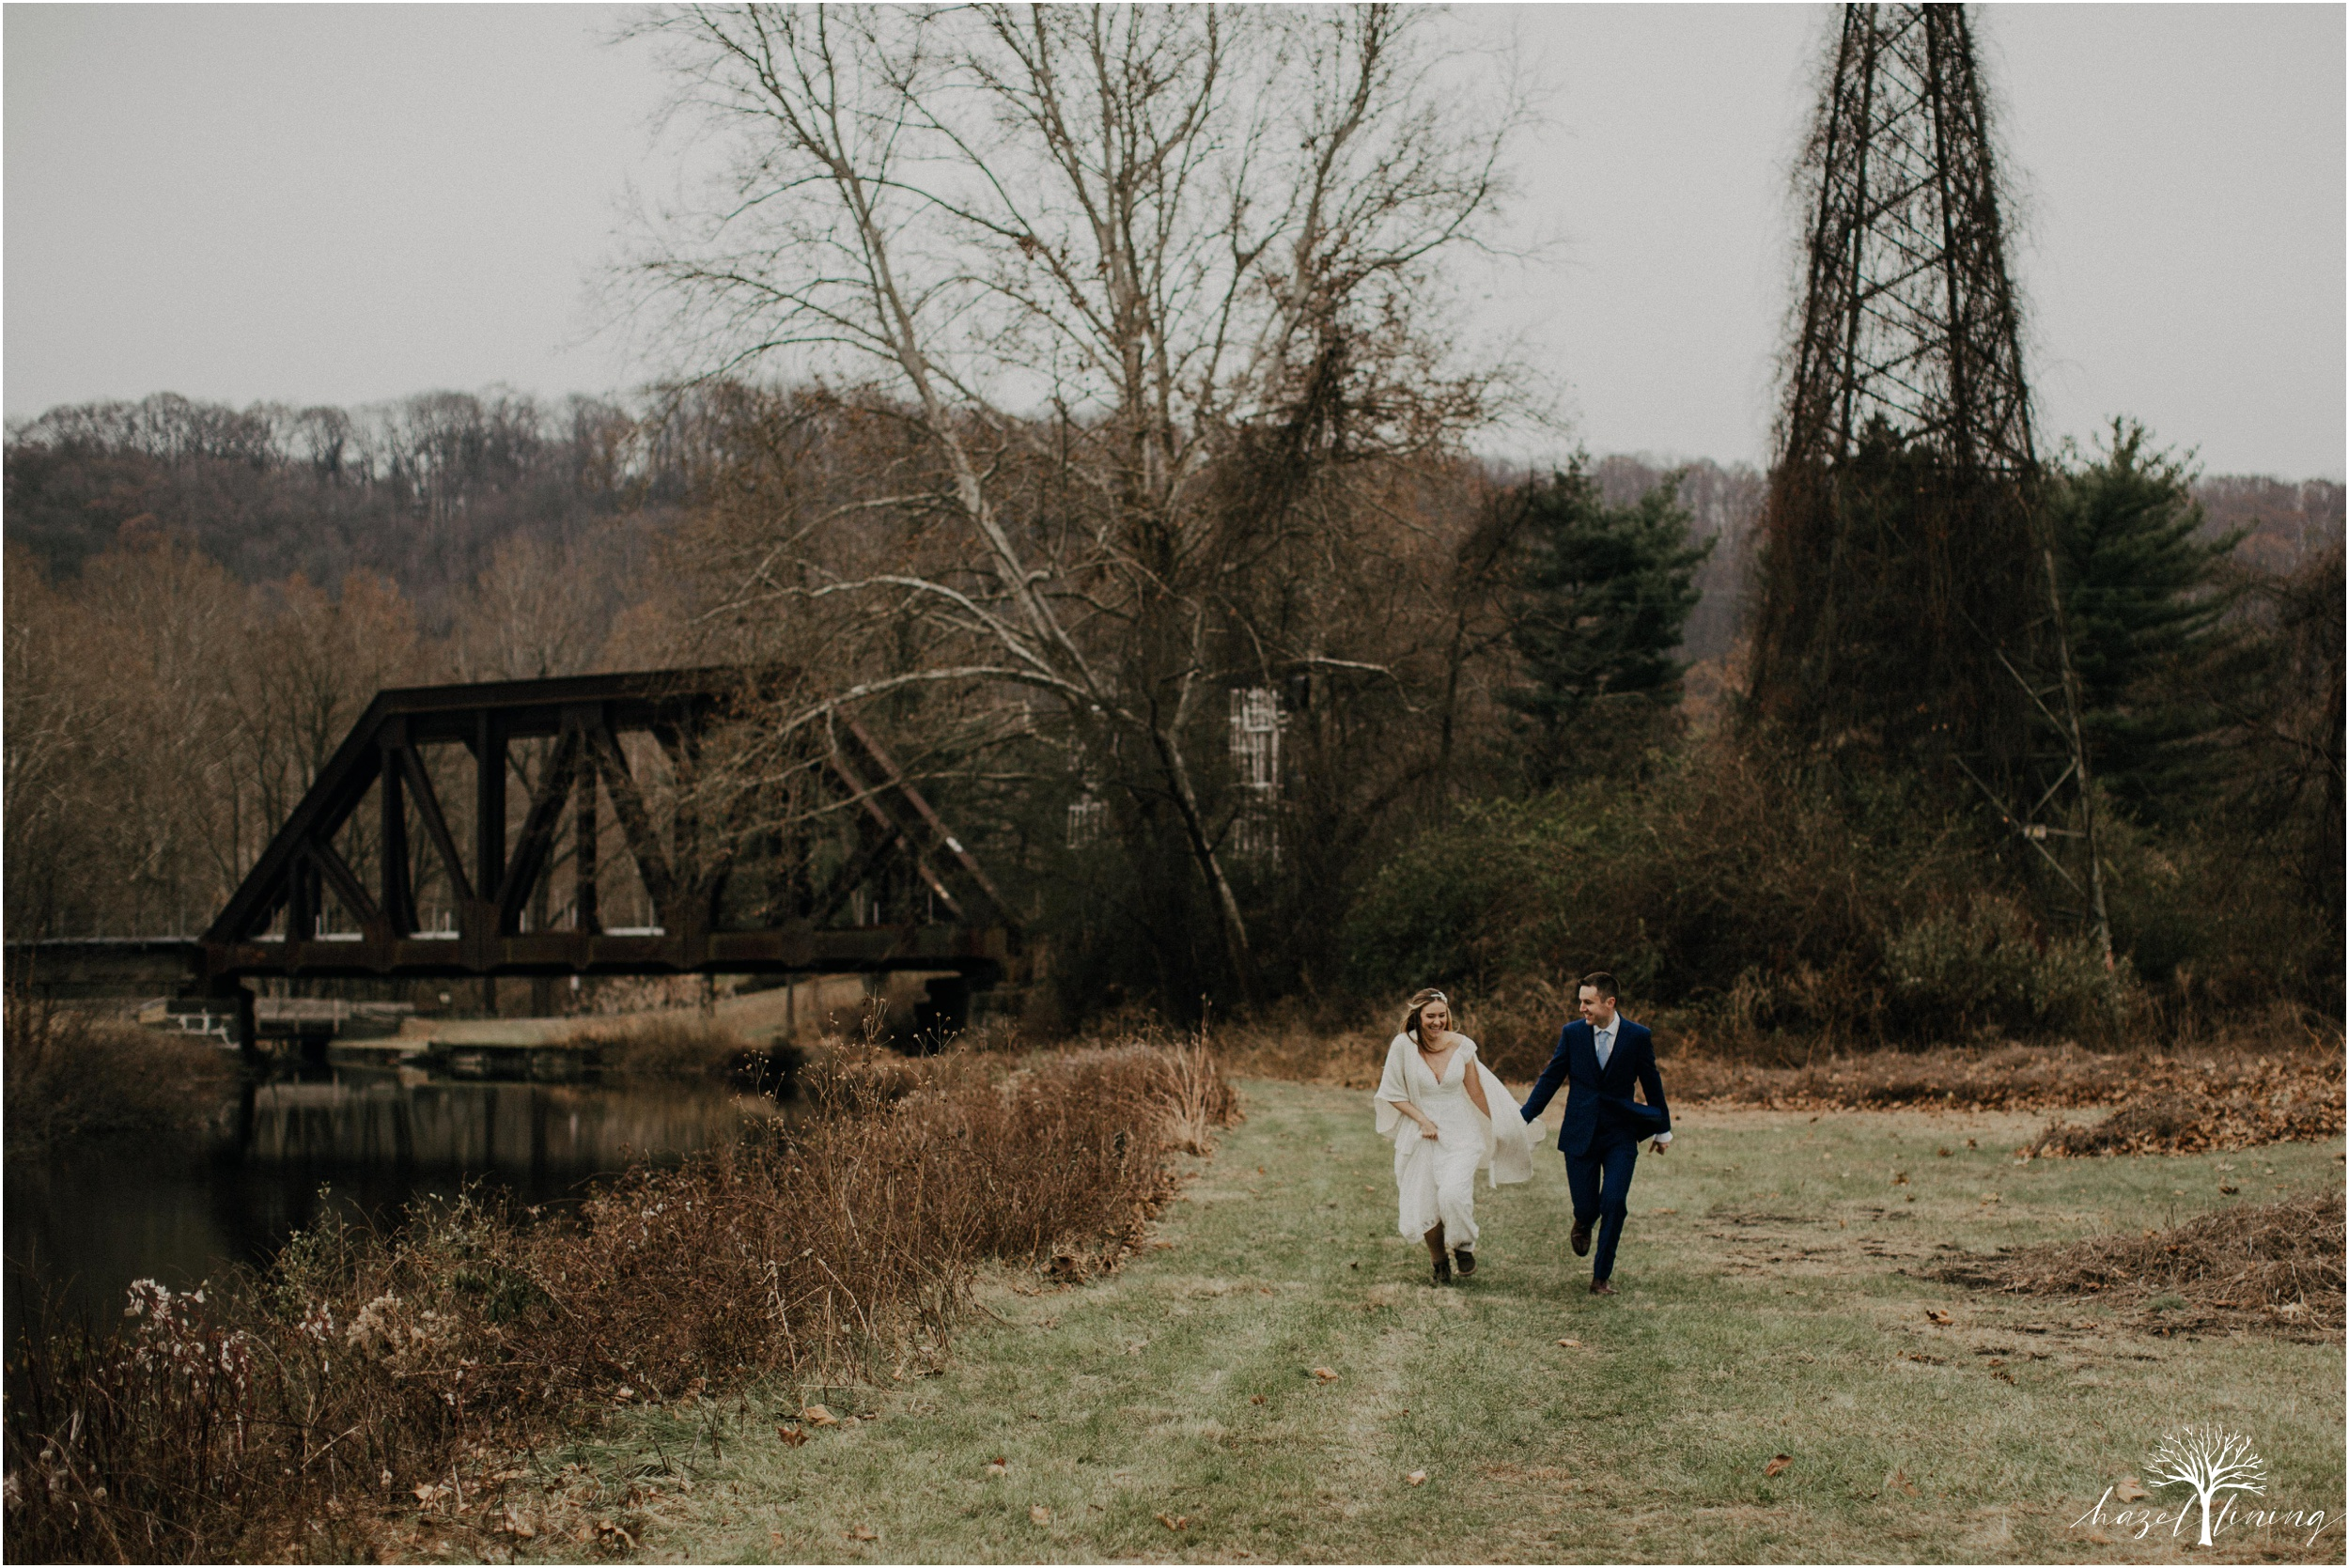 emily-pulham-paul-vincent-london-to-allentown-pa-railway-wedding-portraits_0035.jpg